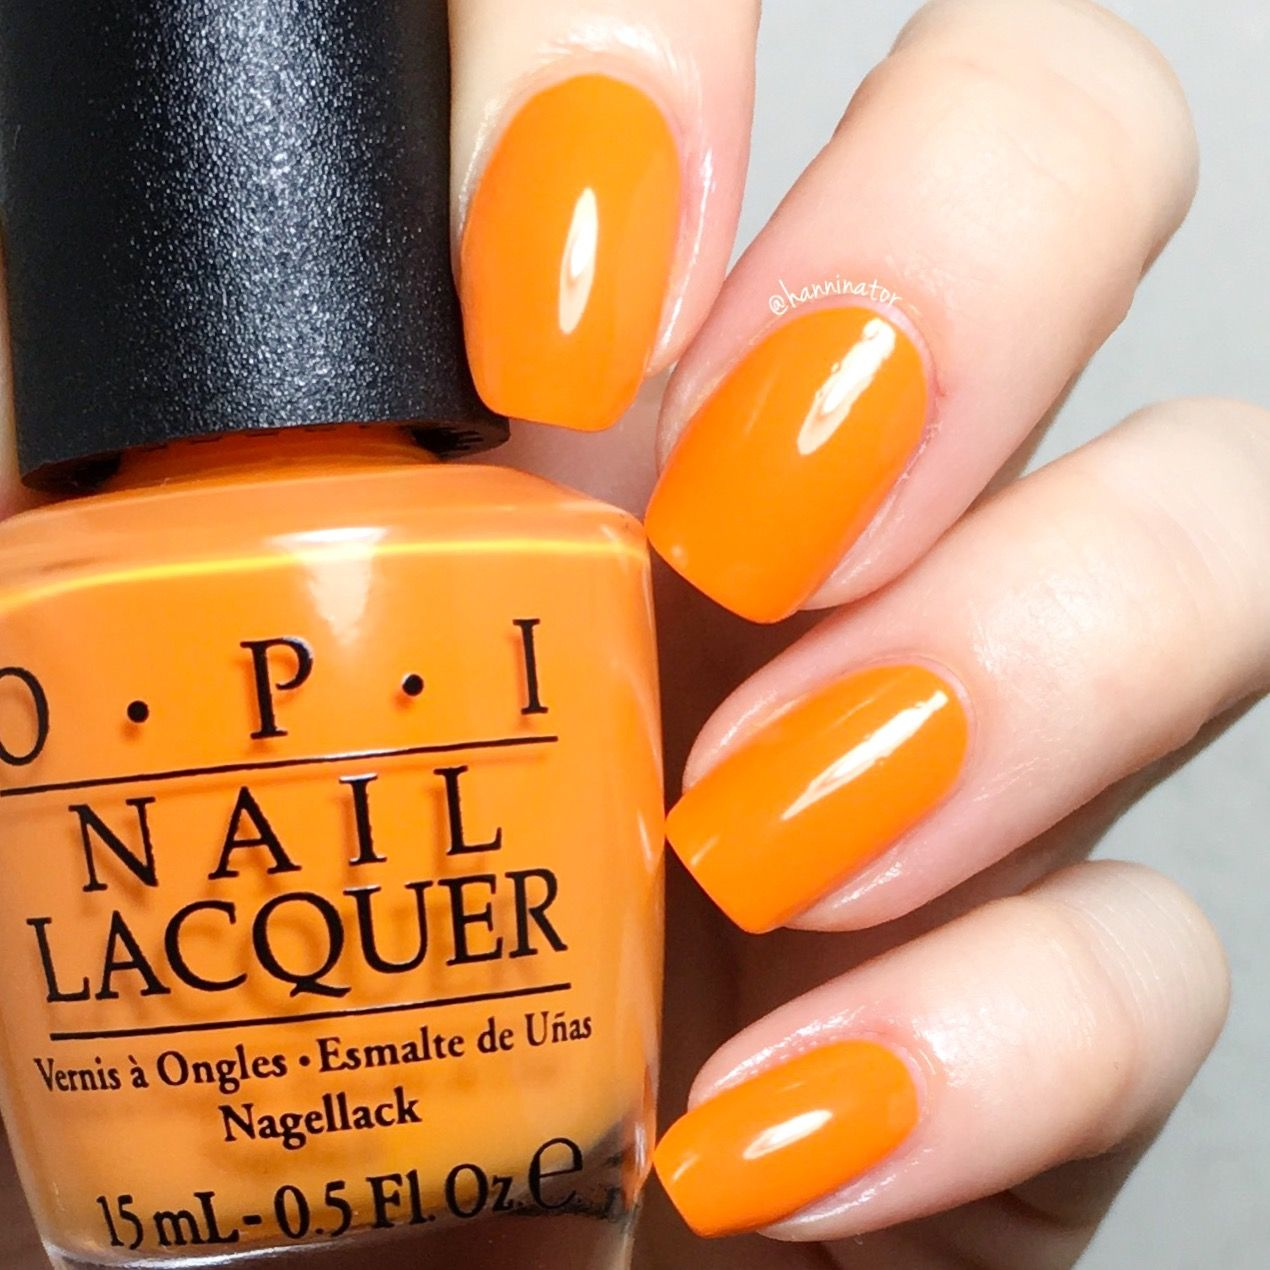 No tan lines - OPI Fiji collection | OPI swatches | Pinterest | Fiji ...